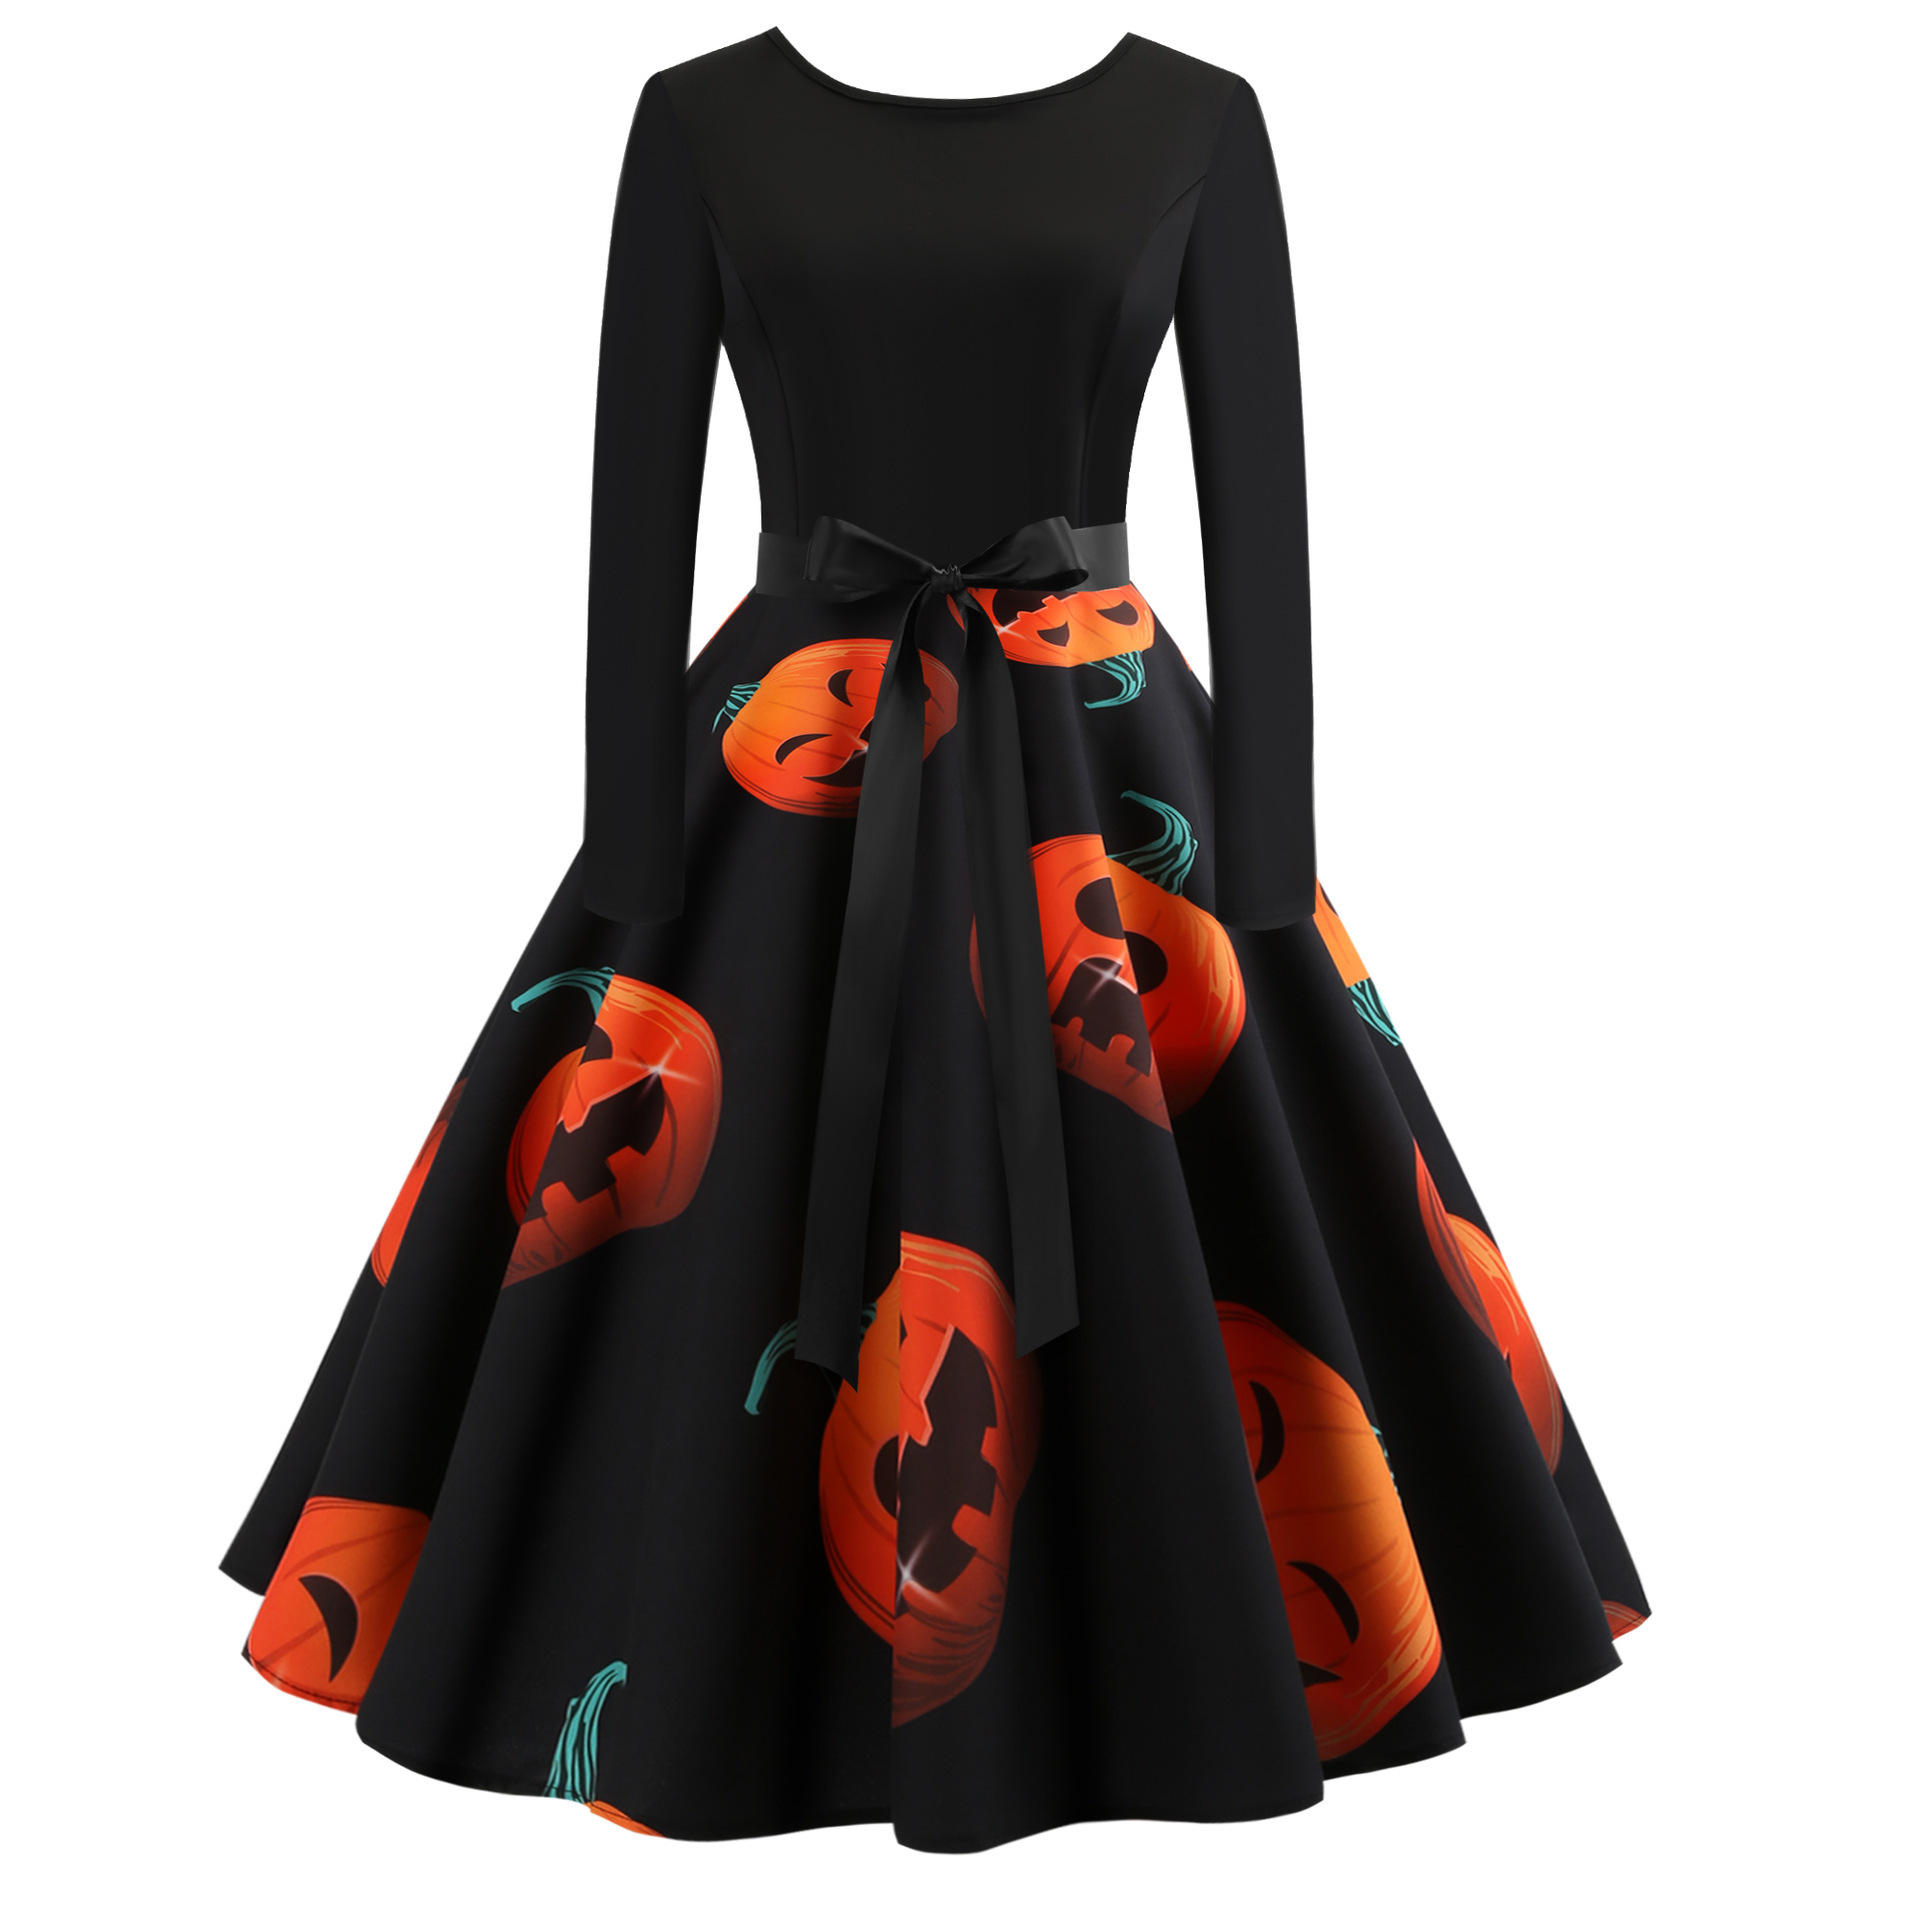 Hot Koop Populaire Gedrukt Halloween Kerst Dames Vintage Midi Party Dress Met Boog